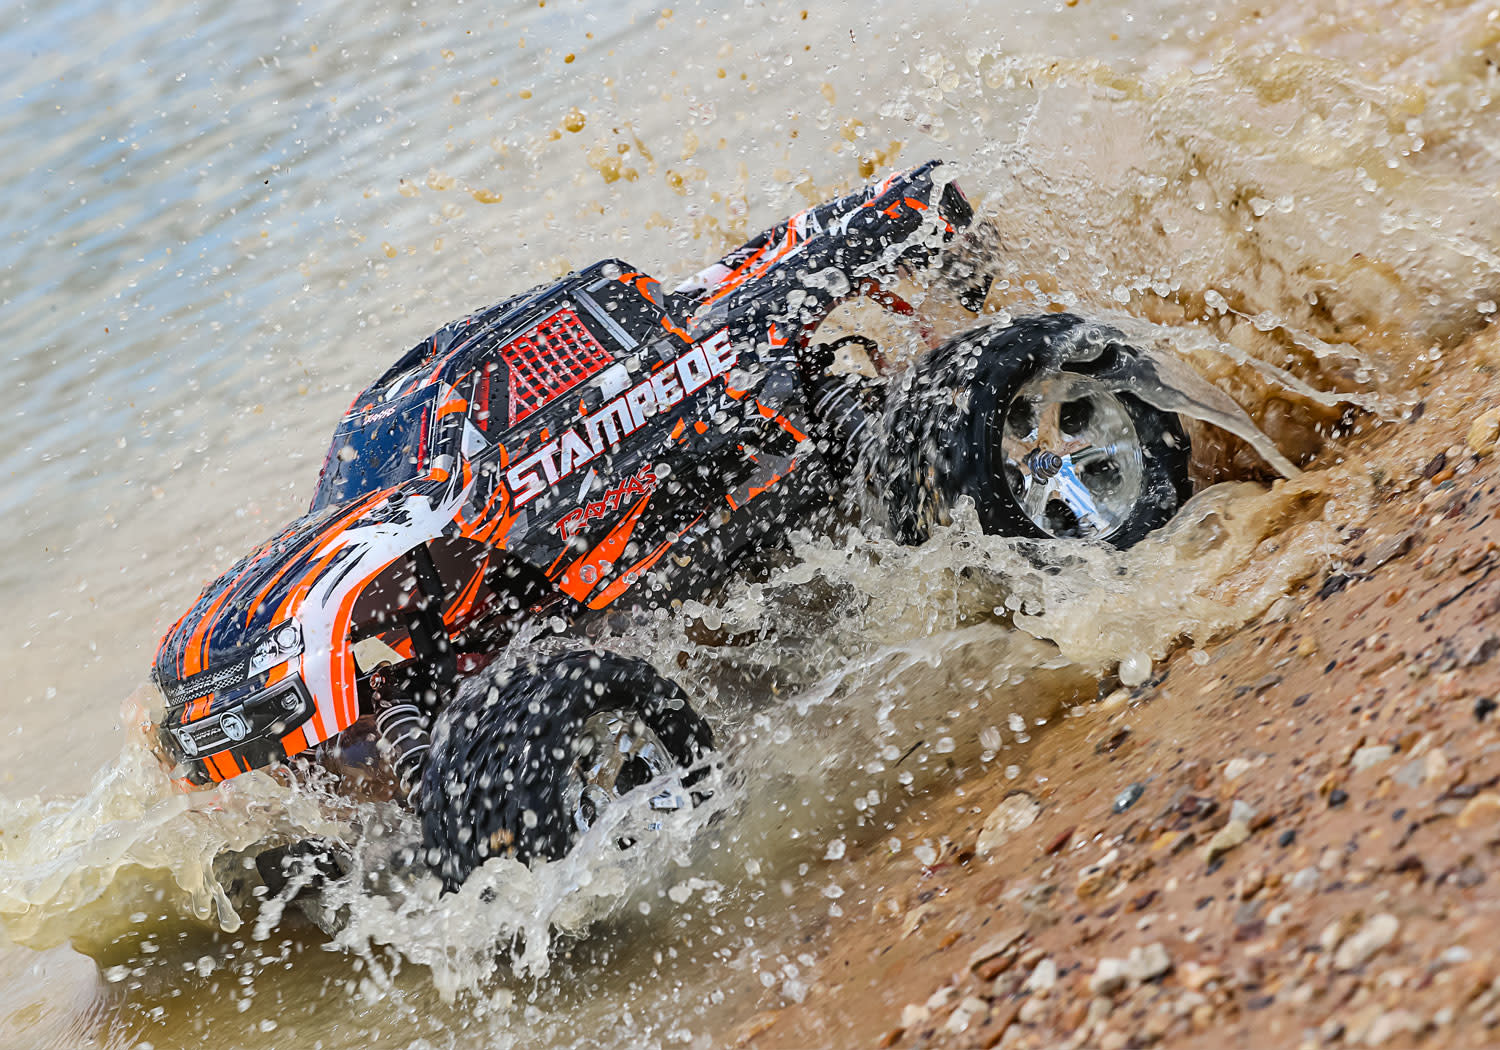 Traxxas Stampede XL-5 TQ (incl battery/charger), Orange TRX36054-1O-6